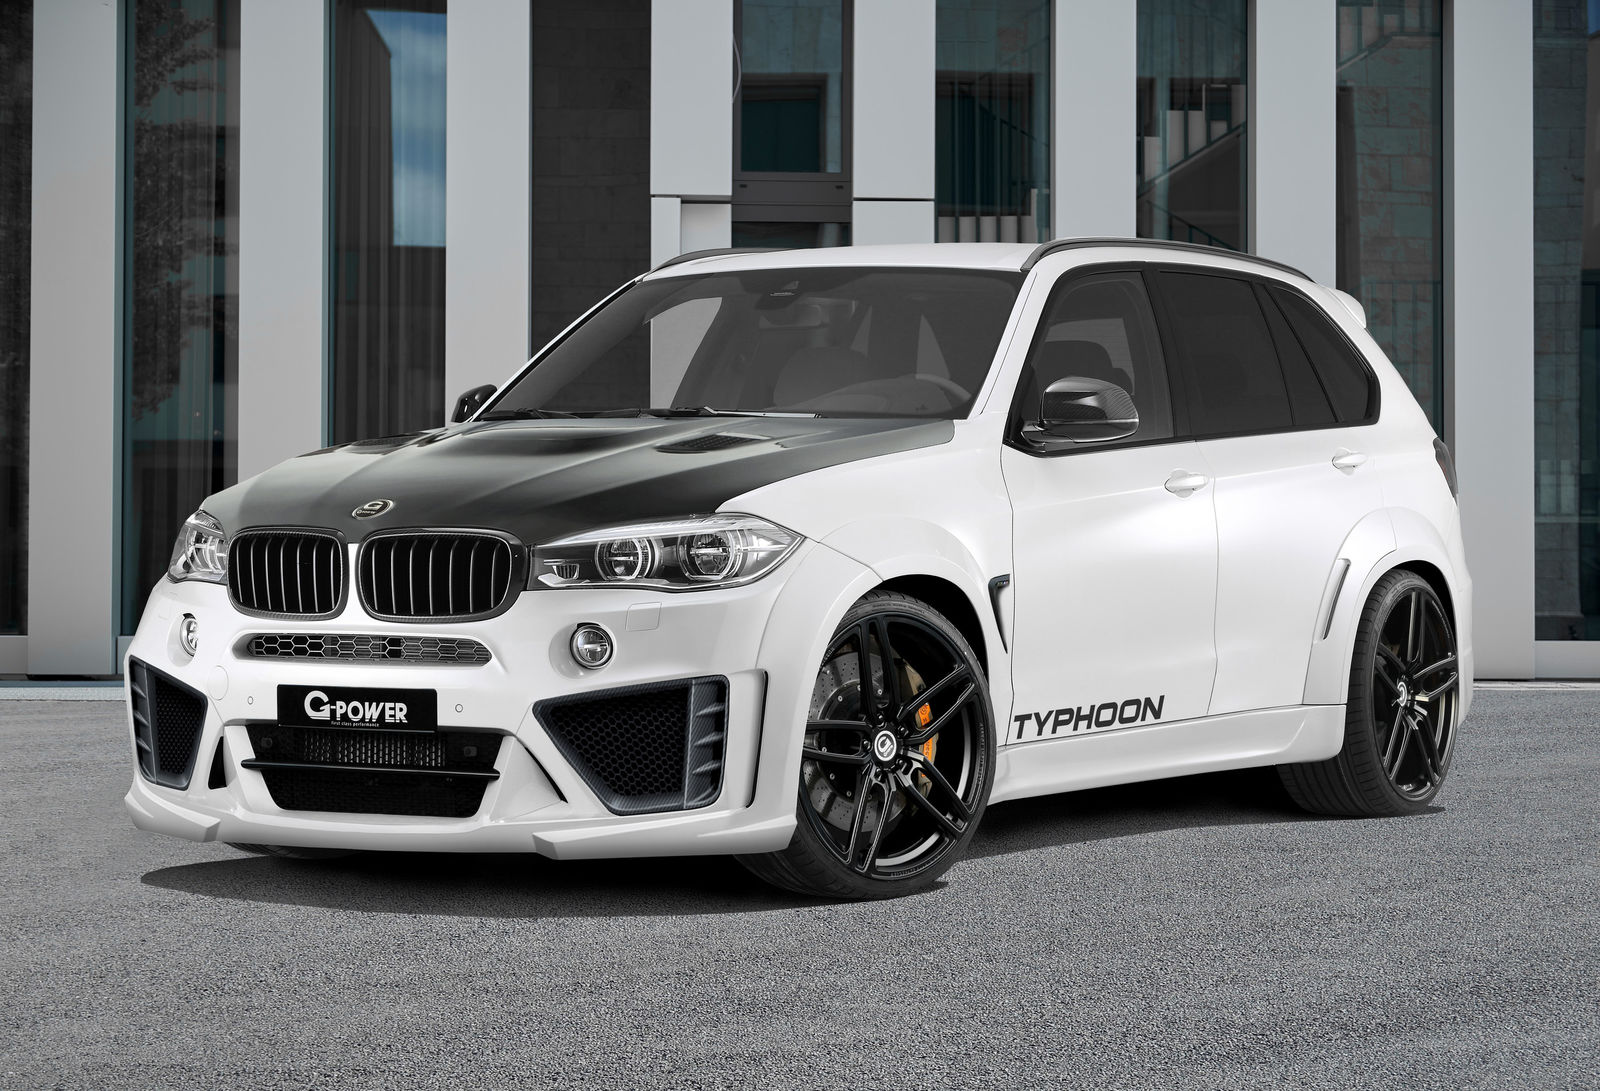 official 2016 g power bmw x5 m typhoon with 750hp gtspirit. Black Bedroom Furniture Sets. Home Design Ideas